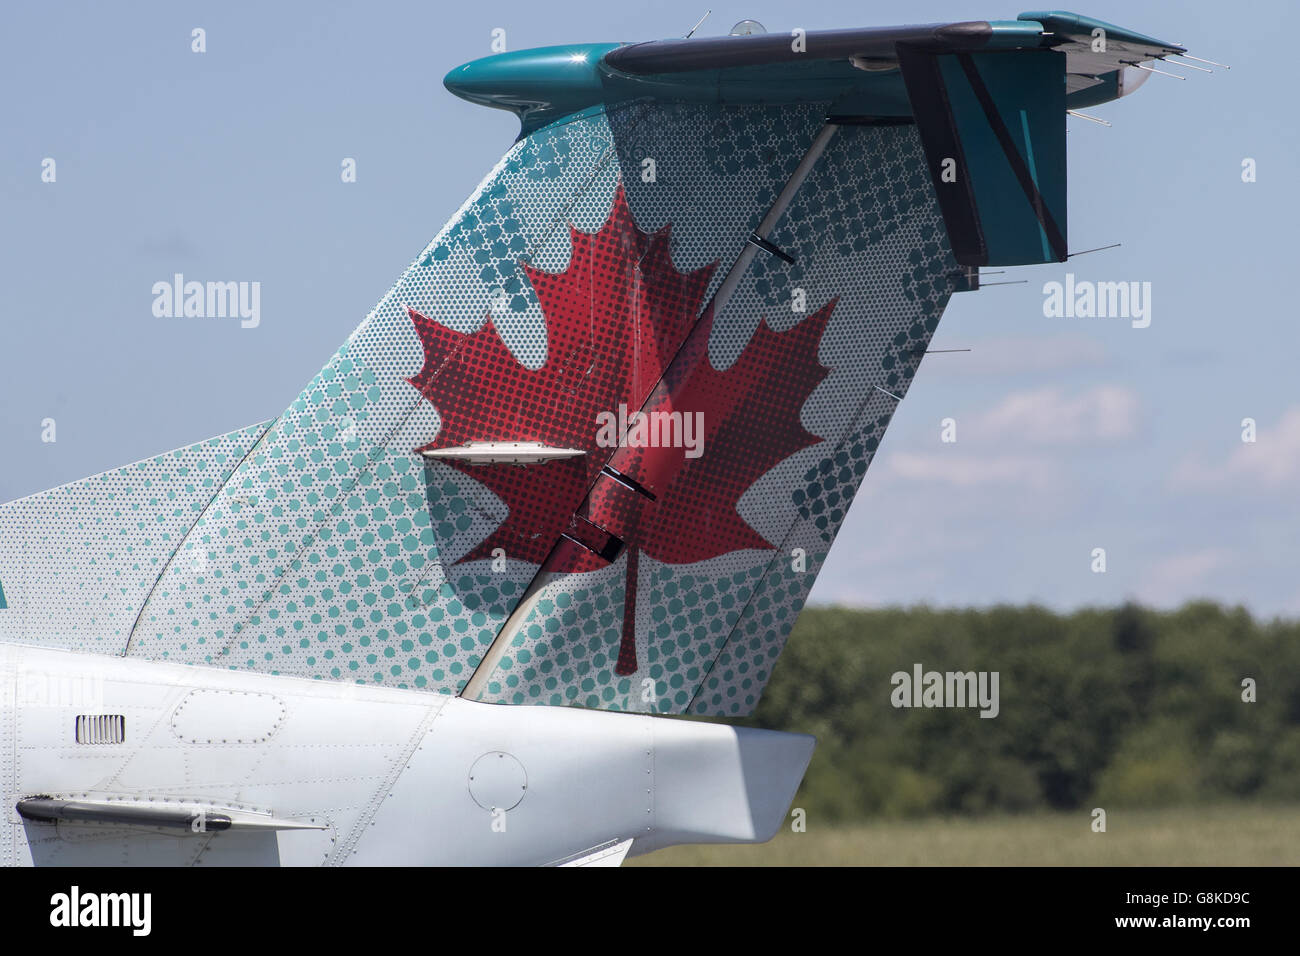 The tail on Air Canada Express Beechcraft 1900D aircraft, operated by Georgian before take-off at Norman Rogers - Stock Image